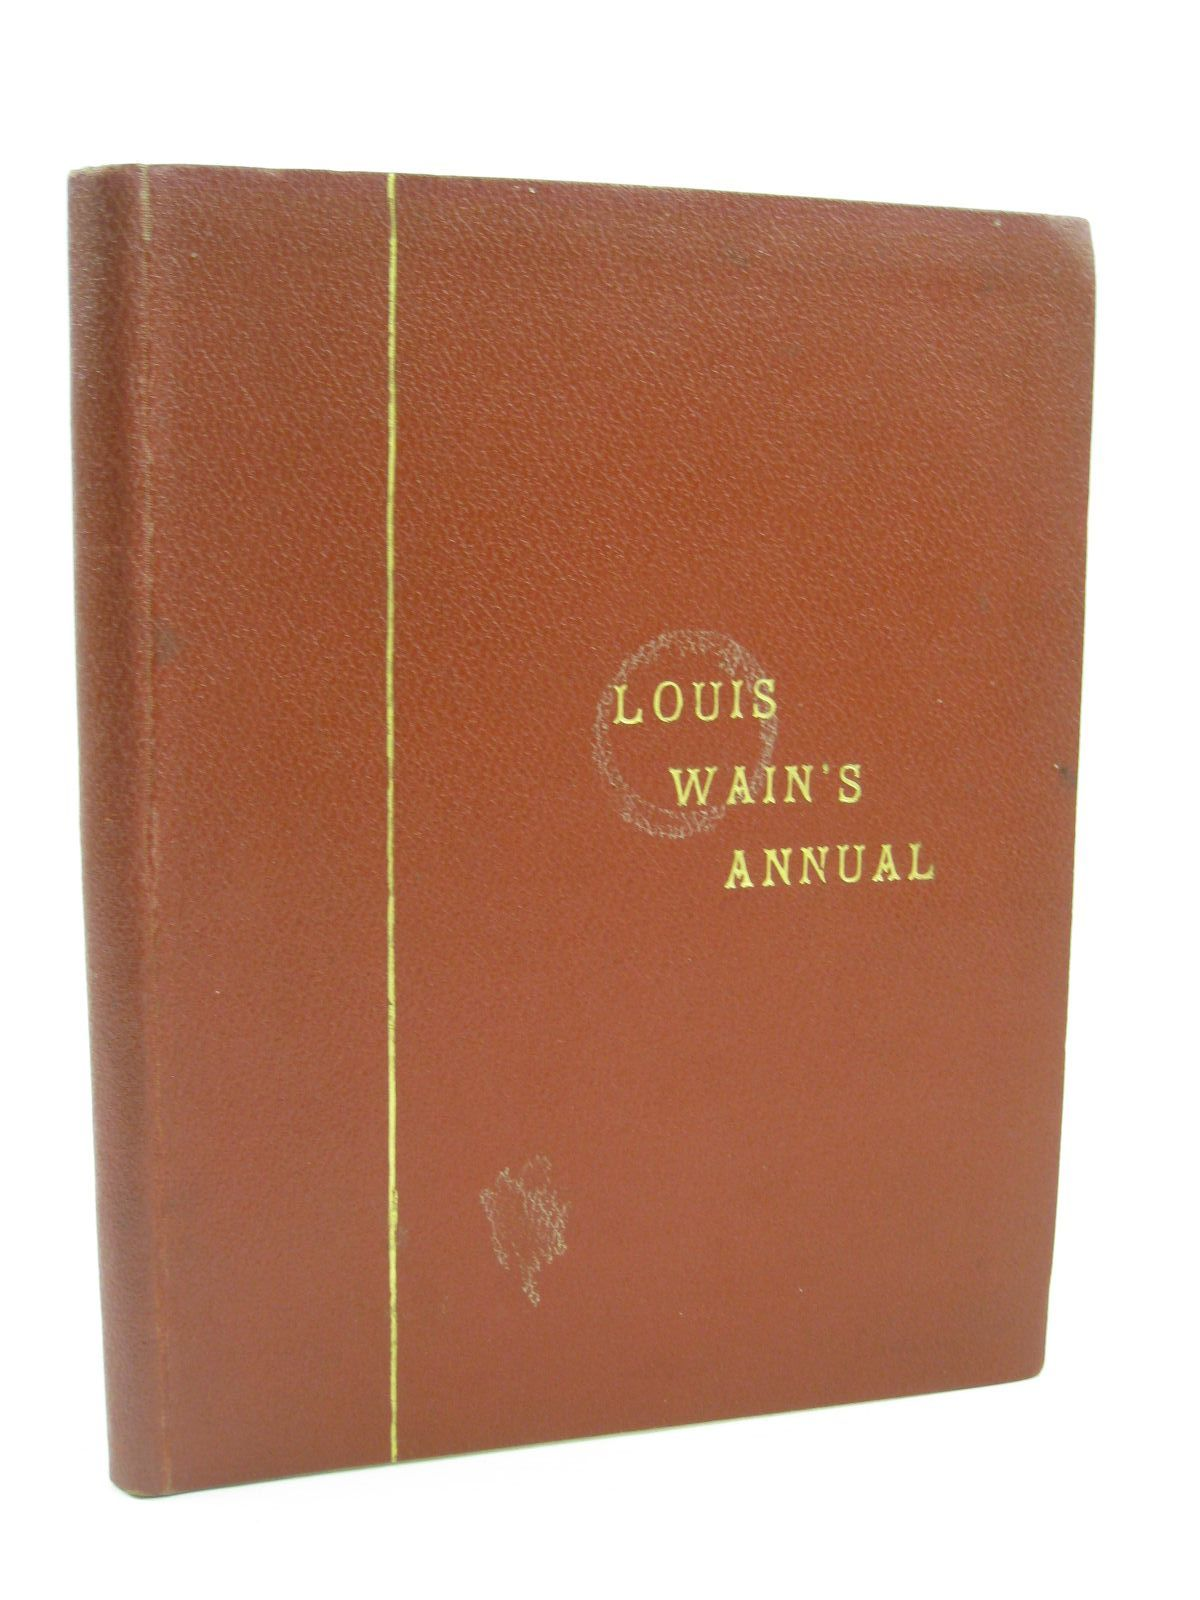 Photo of LOUIS WAIN ANNUAL 1902 AND 1905 written by Various, illustrated by Wain, Louis published by Anthony Treherne & Co. Ltd., P.S. King & Son (STOCK CODE: 1316409)  for sale by Stella & Rose's Books